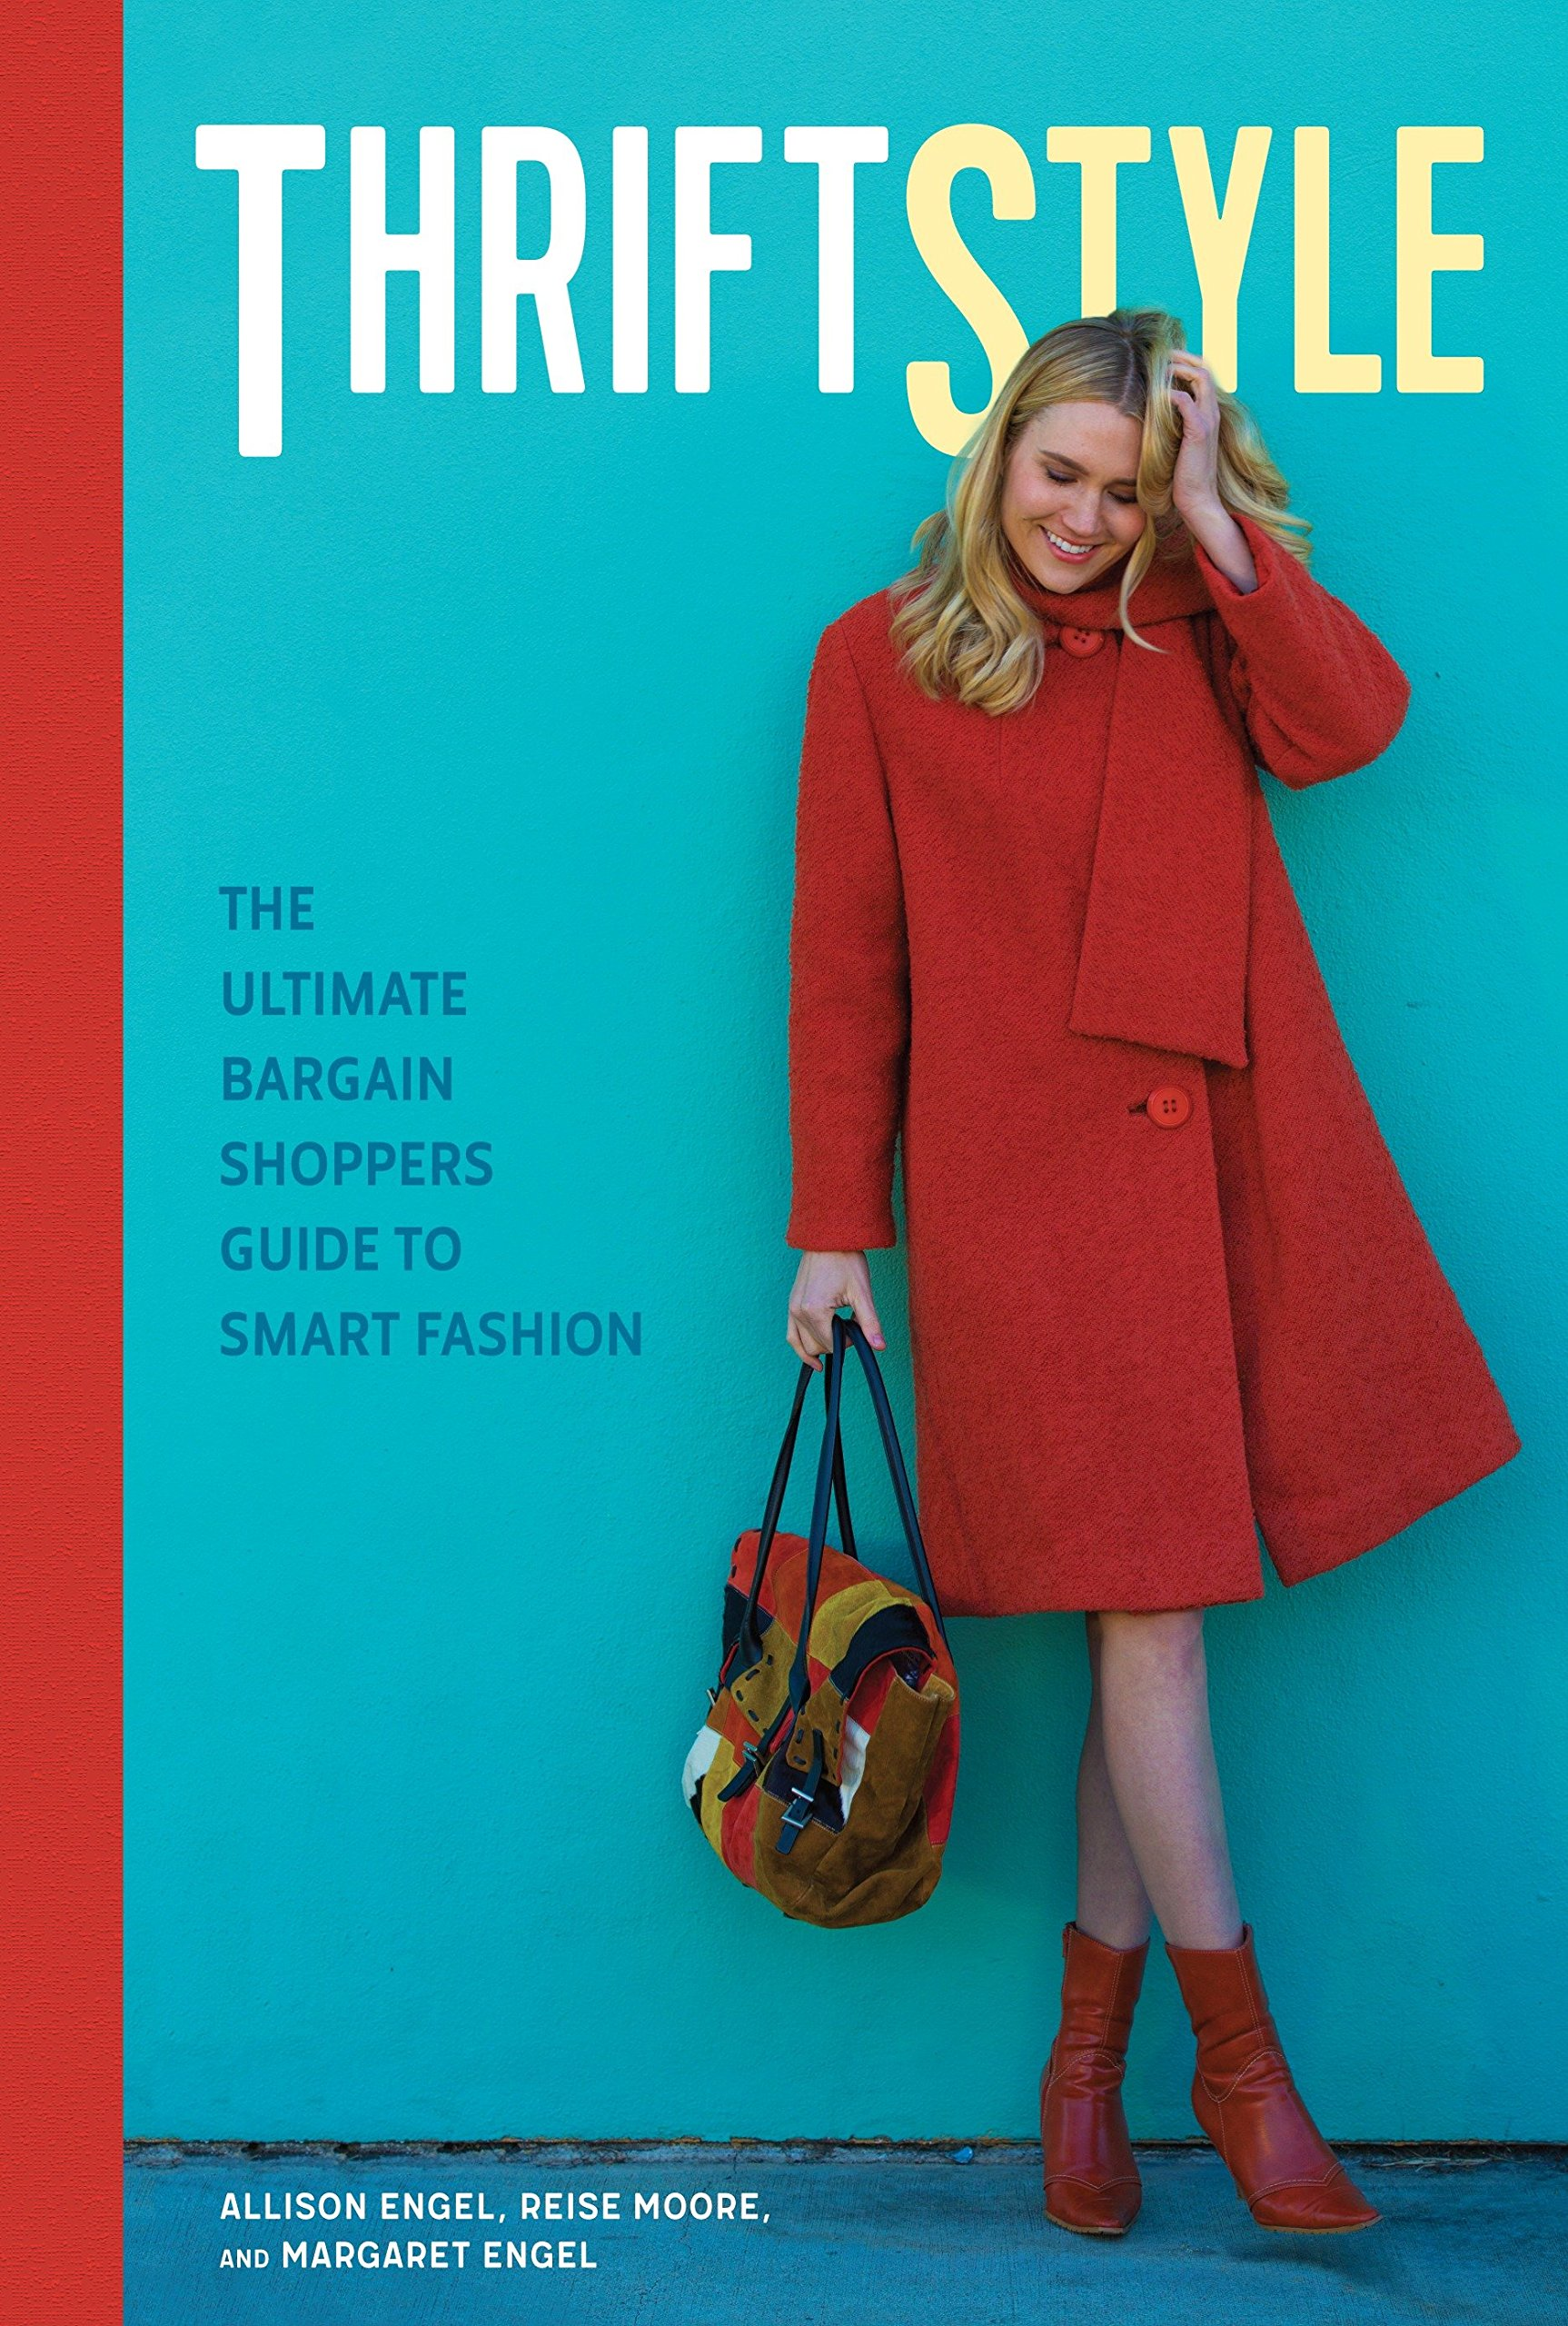 ThriftStyle: The Ultimate Bargain Shopper's Guide to Smart Fashion PDF